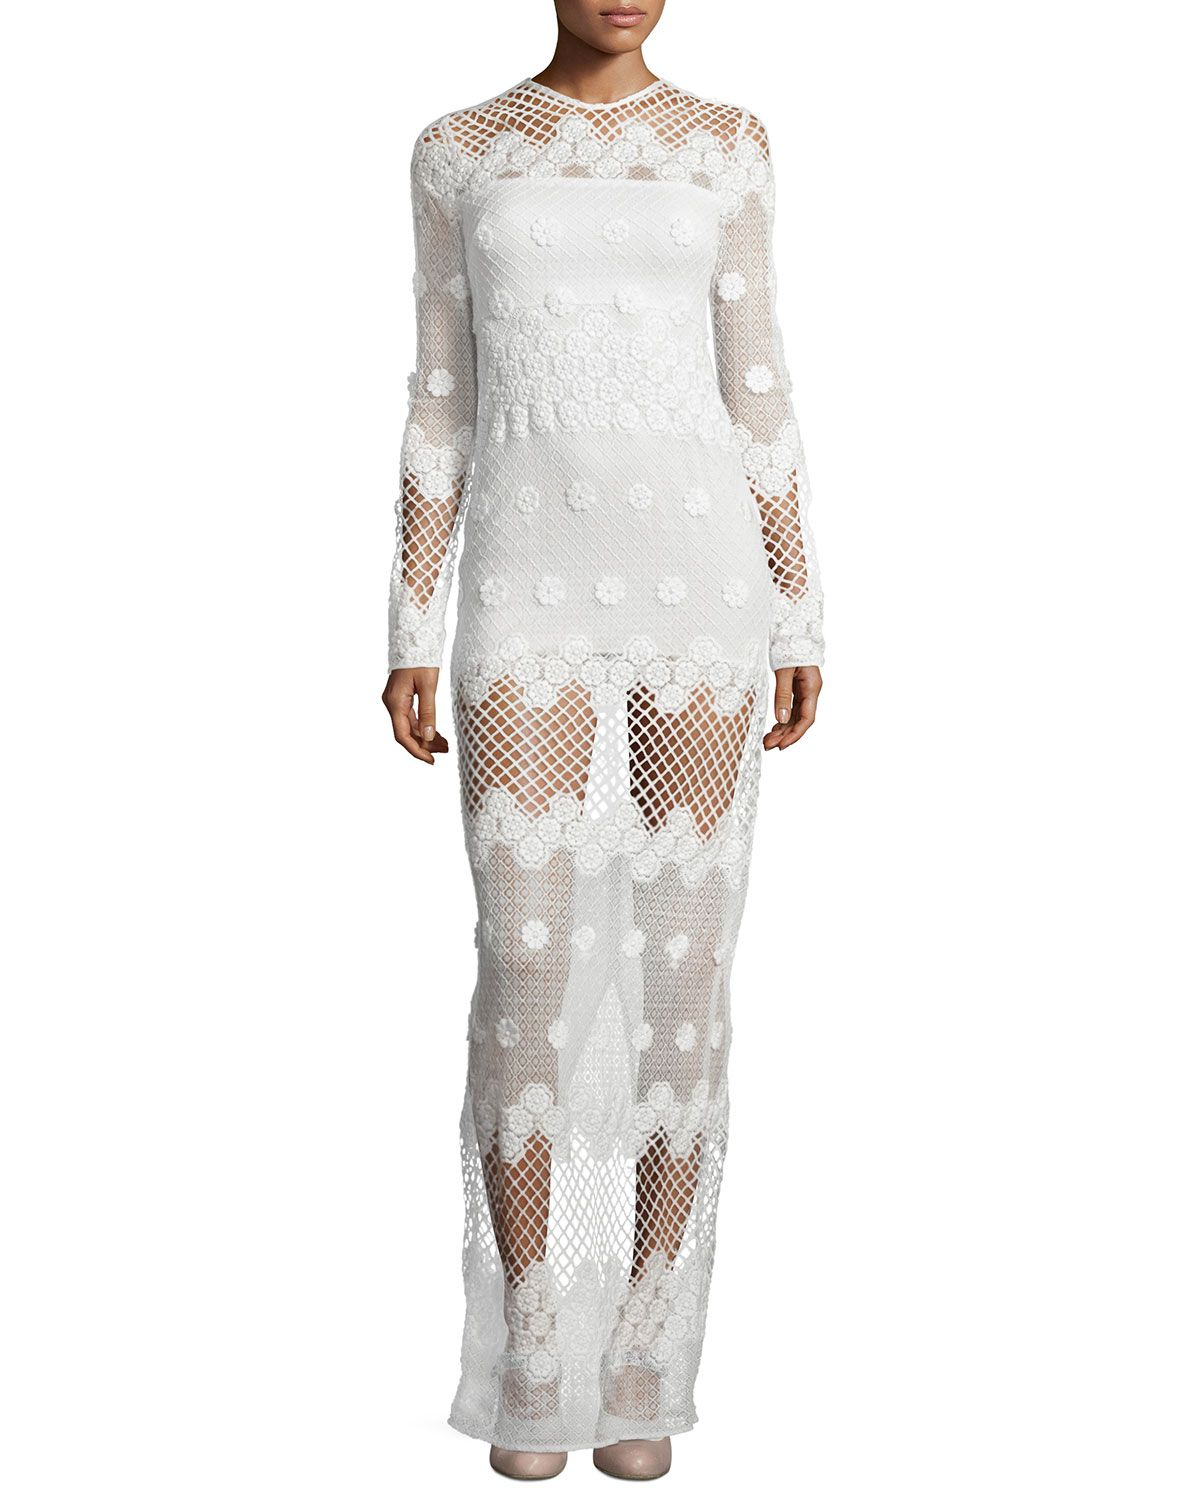 Neiman marcus dresses for weddings  Axelle LongSleeve Netted Maxi Dress White  Alexis  Neiman